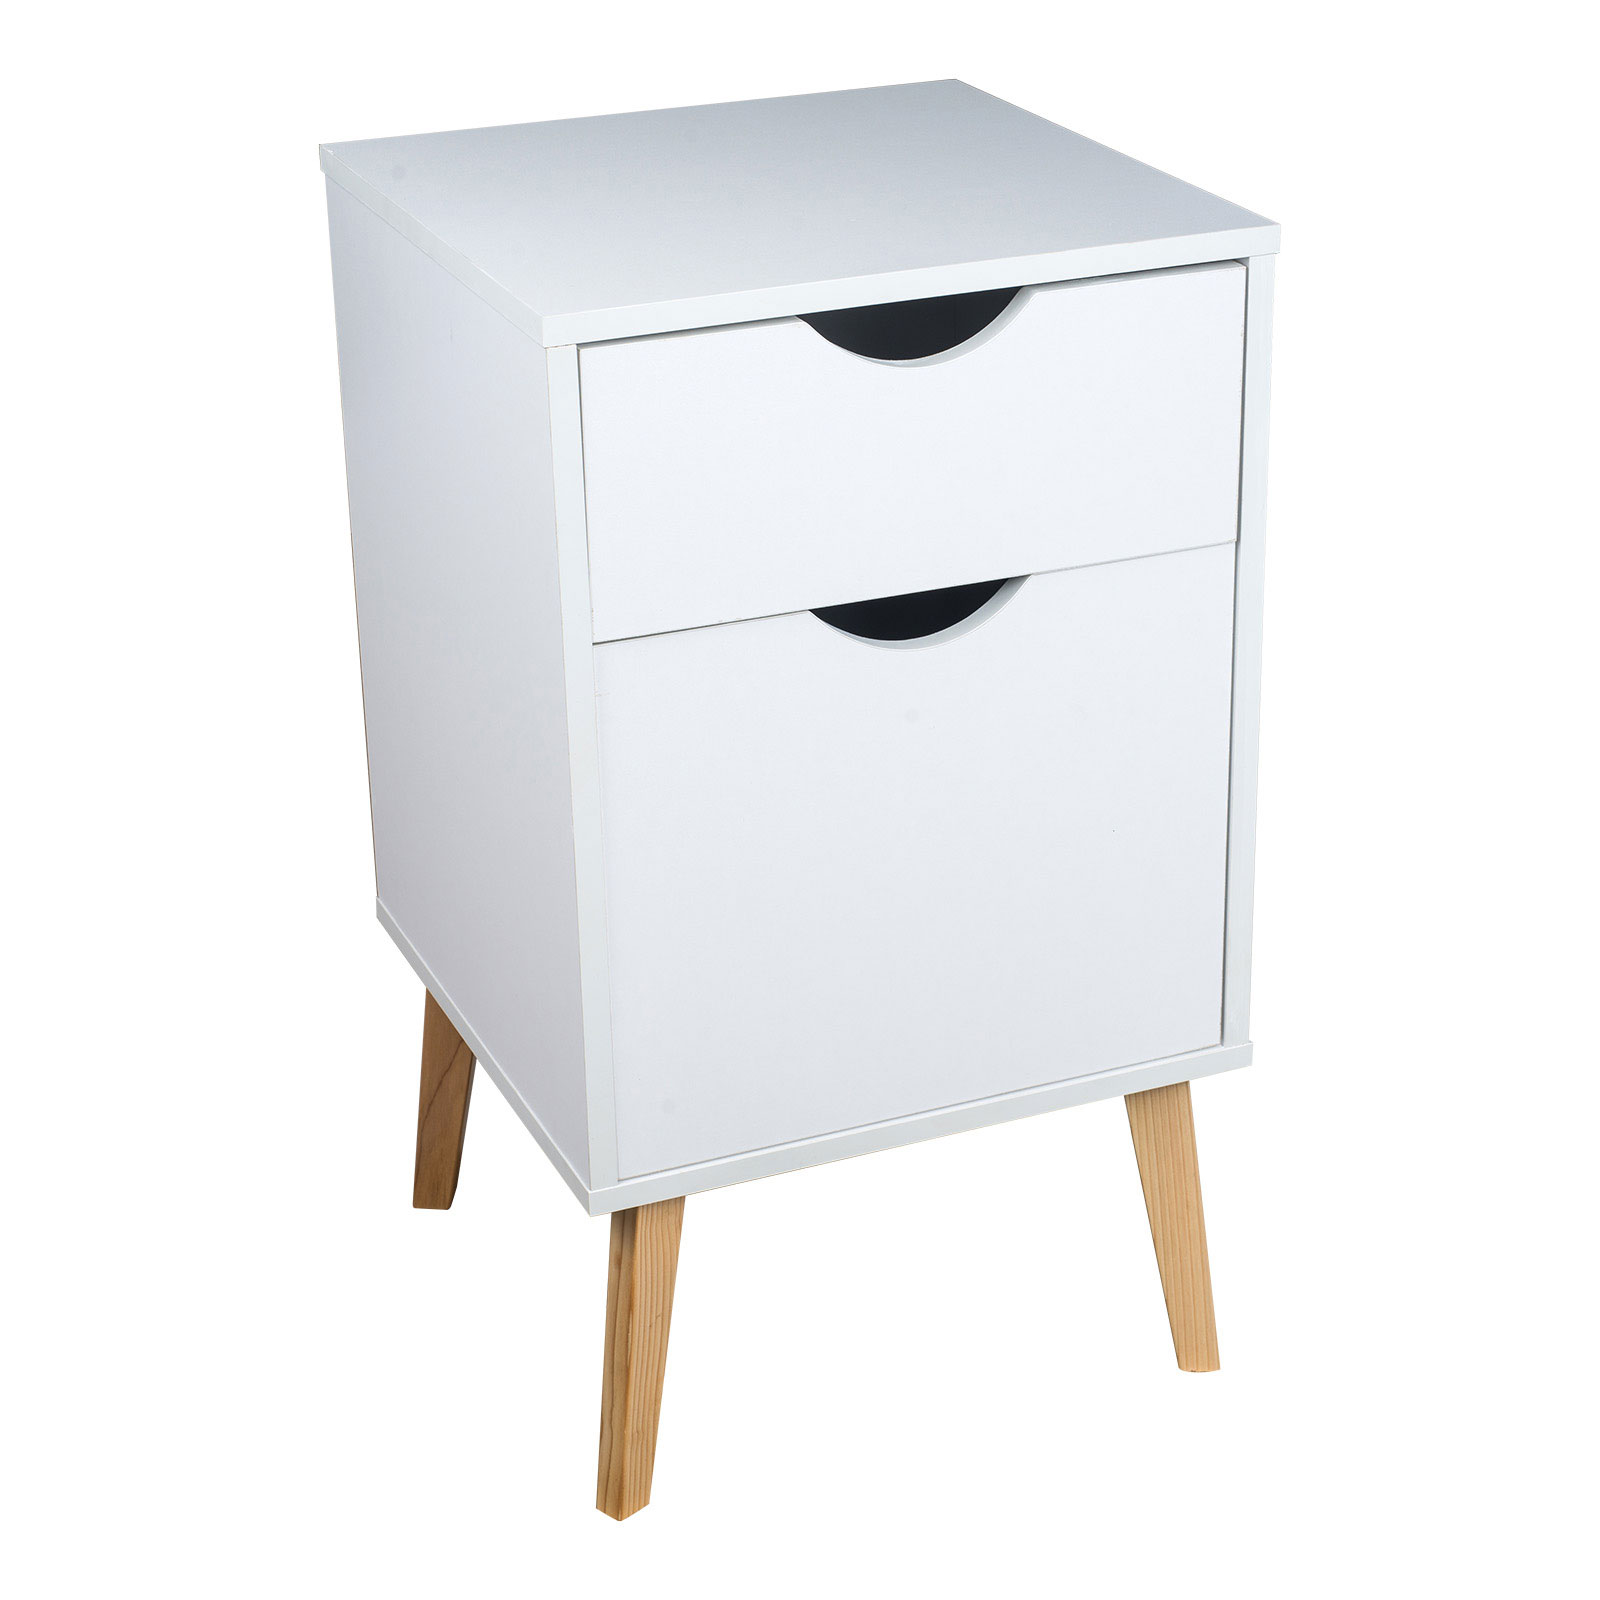 White Bedside Drawers White Storage Unit Table Home Bedside With 2 Drawers